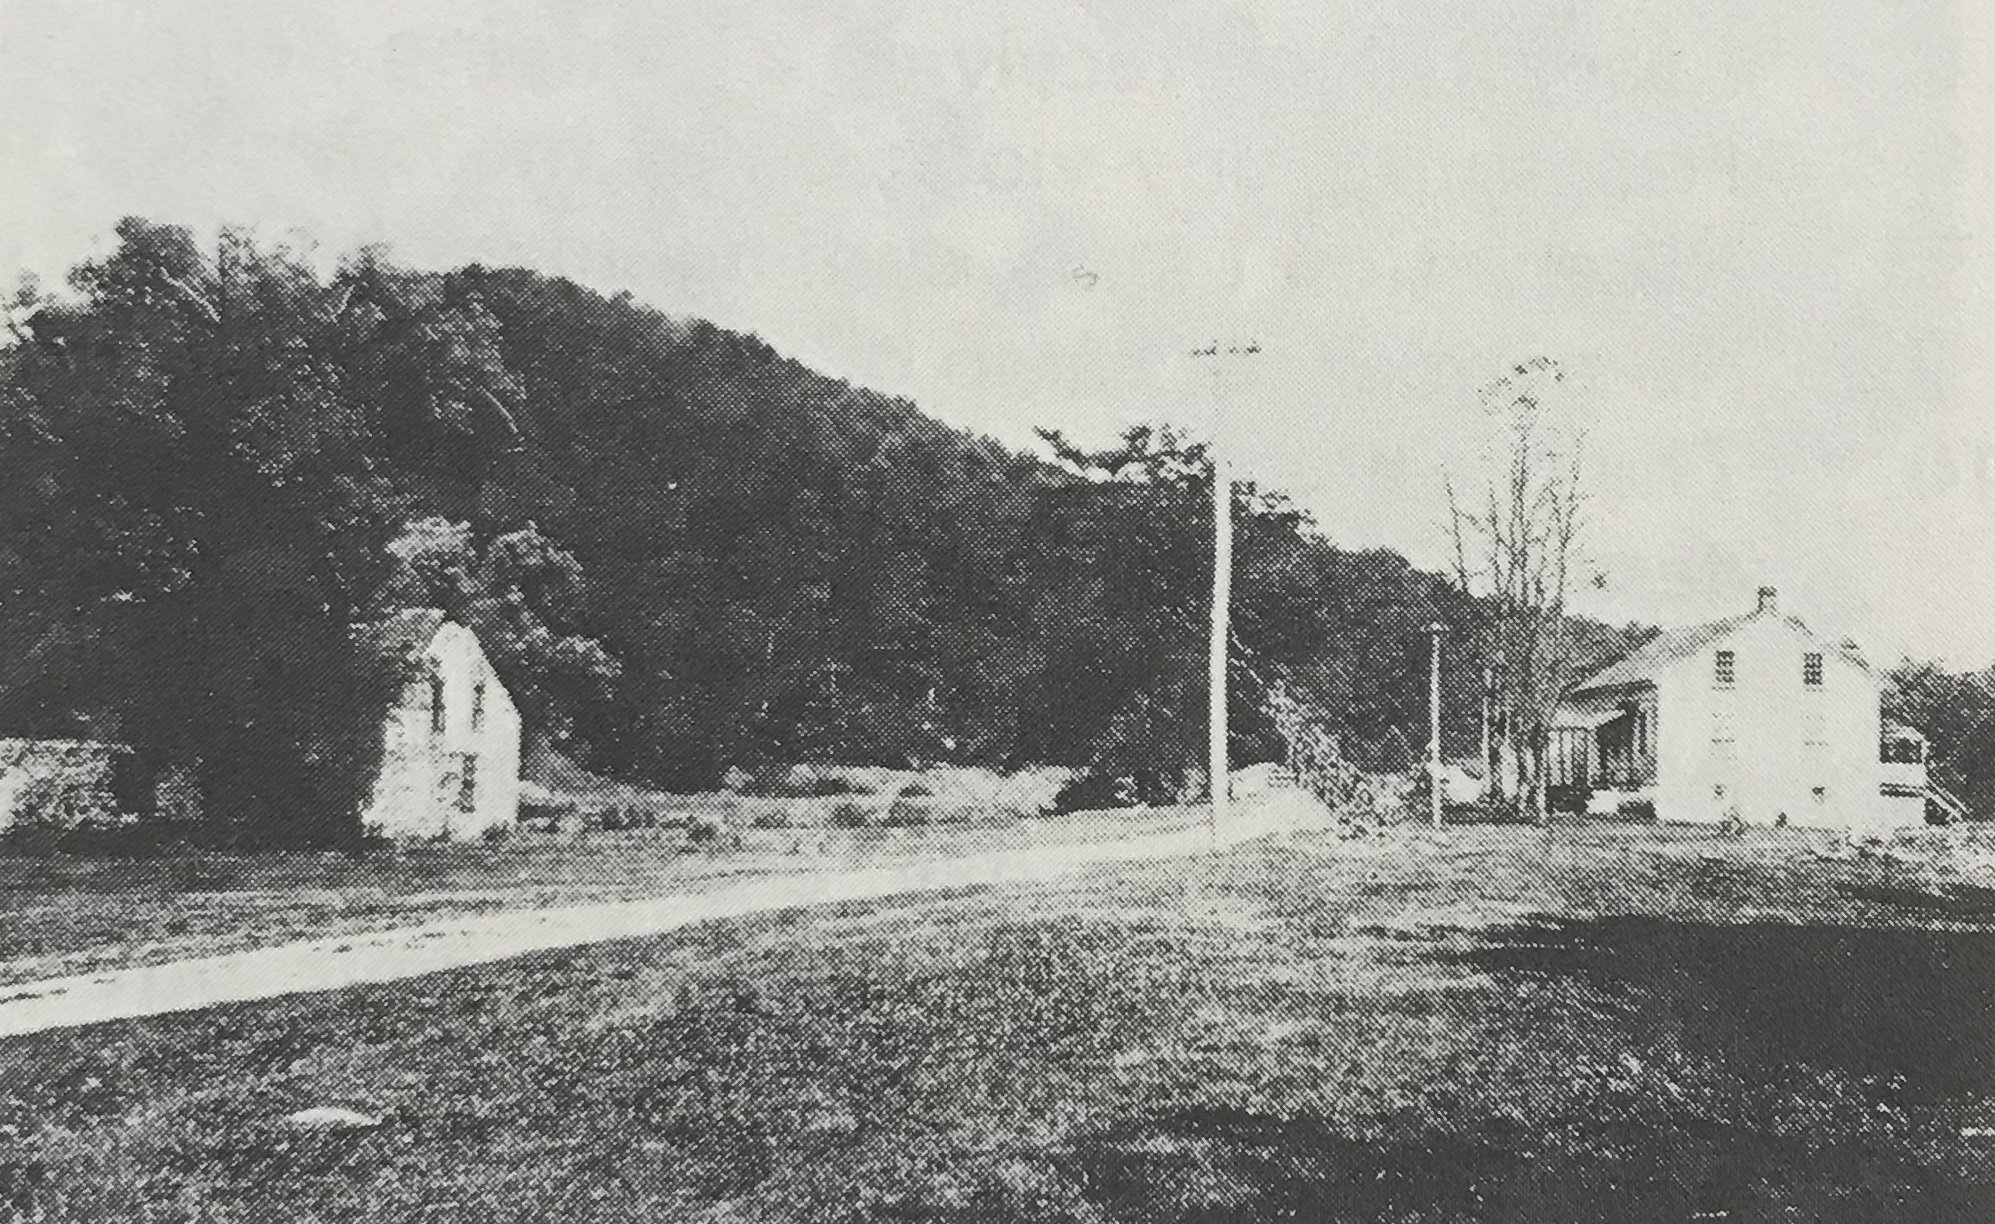 Taken in 1903, this photo shows the forested area of the state park along with the road that is still used today, the Lincoln Highway. Thaddeus Stevens' Blacksmith Shop is on the left, while the office of the iron furnace is on the right.